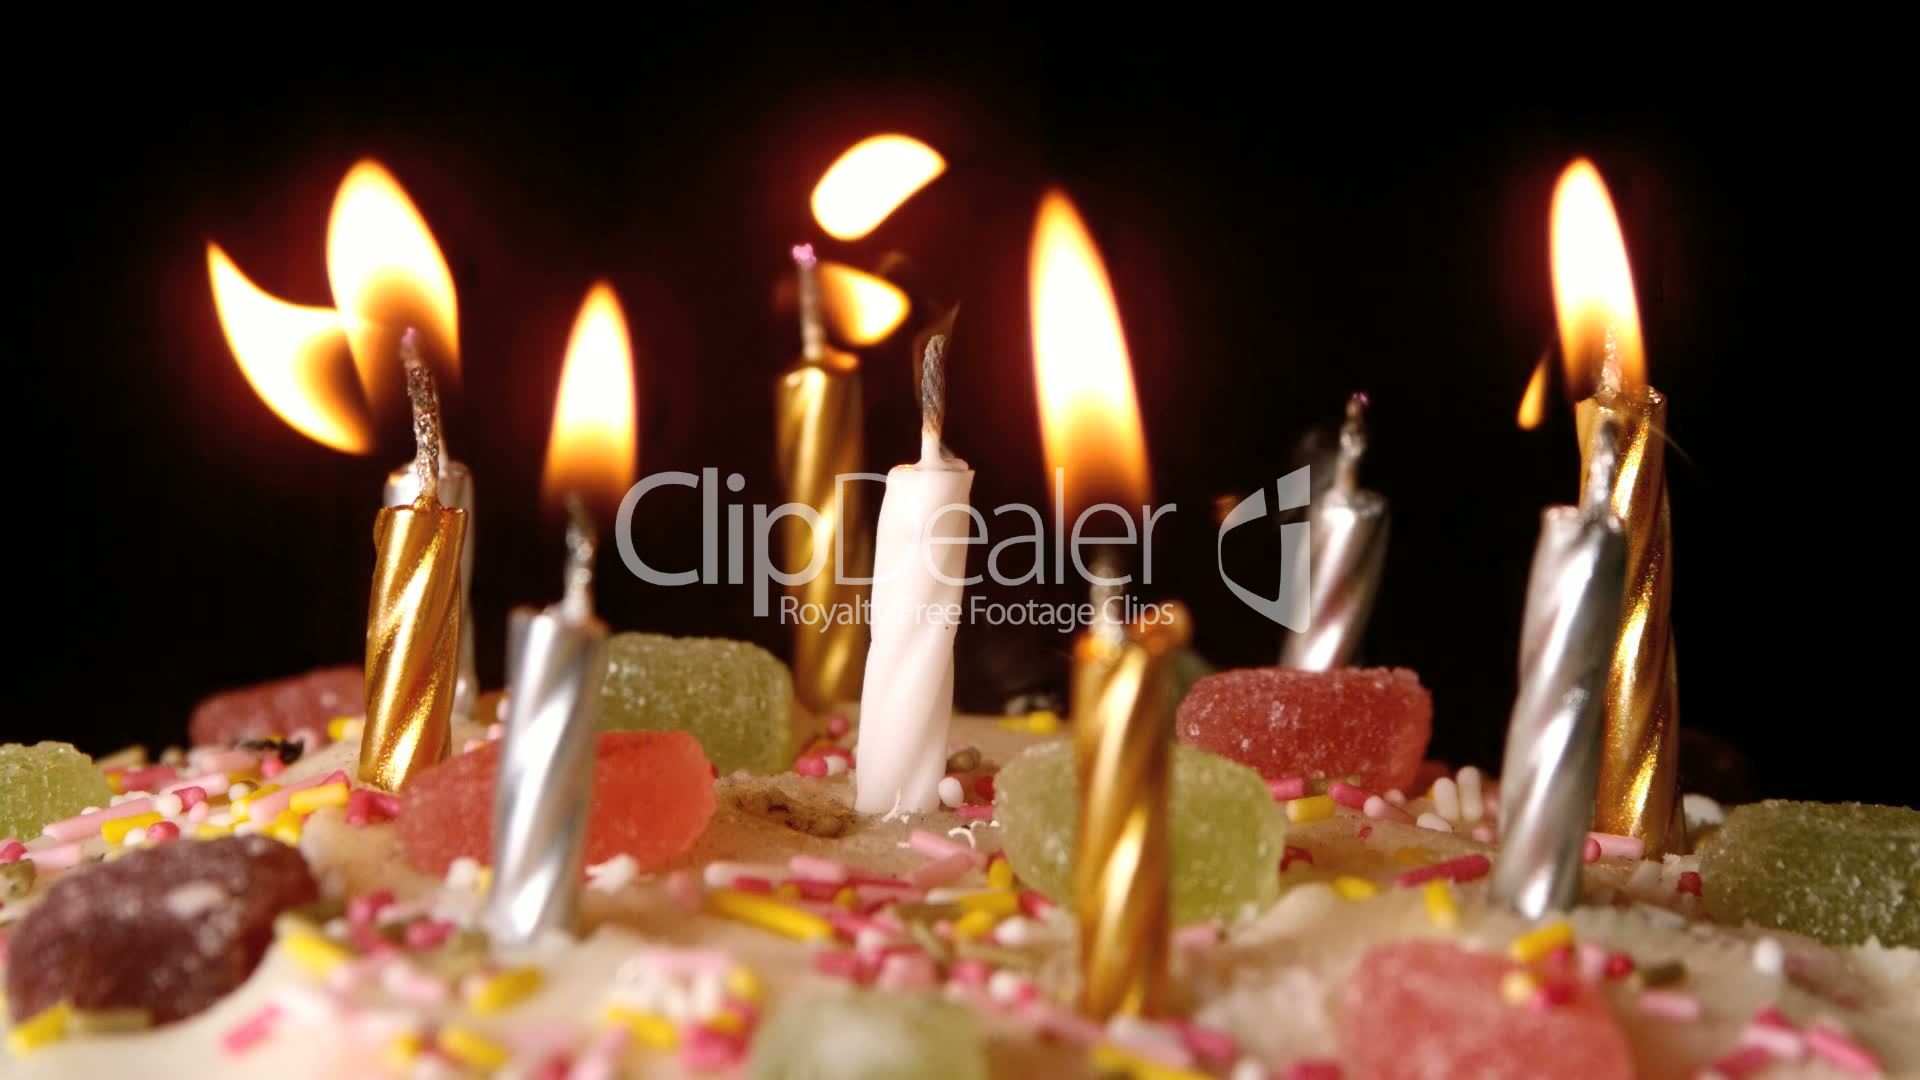 Candle Pink White Glitter Lighting Lit Flame Fire Blown Out Extinguished Breeze Wind Wish Flickering Icing Cake